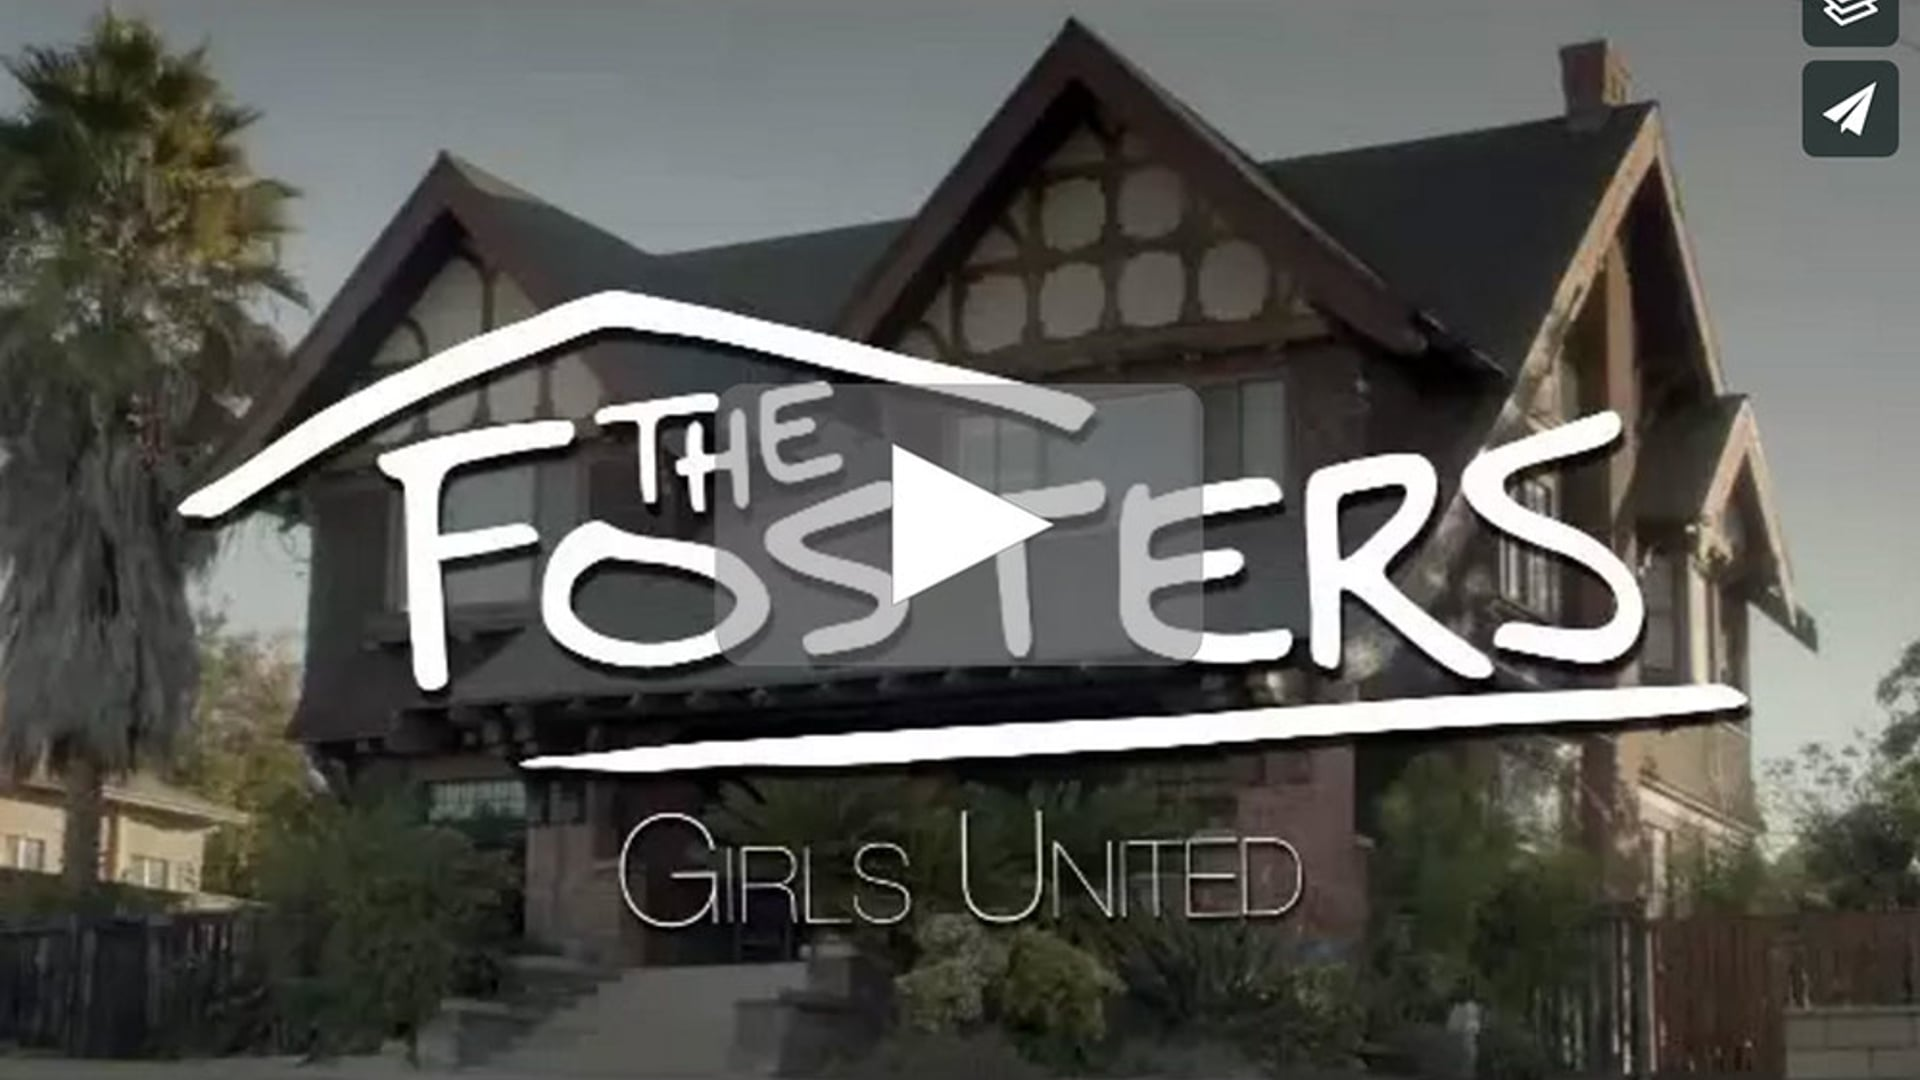 The Fosters: Girls United [2014, 5 episodes]